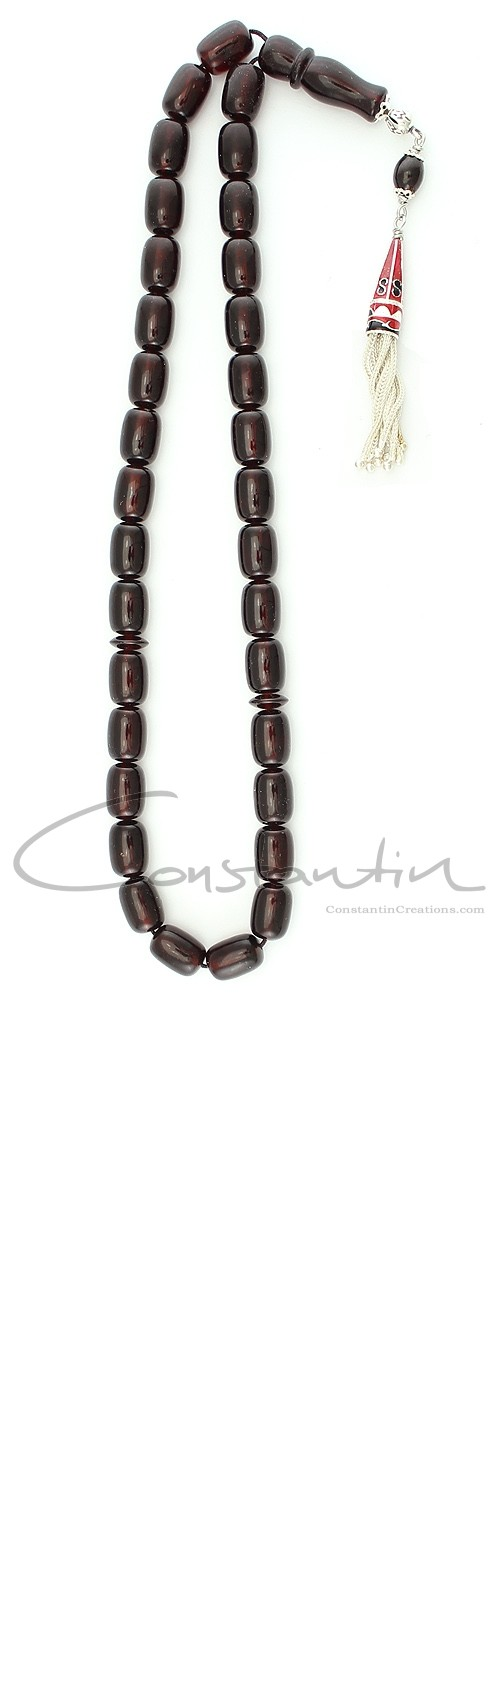 Constantin Creations- natural-red-amber-worry-beads-kırmızı-kehribar-tespih- العنبر أحمر -المسبحة -greek-komboloi-B 190